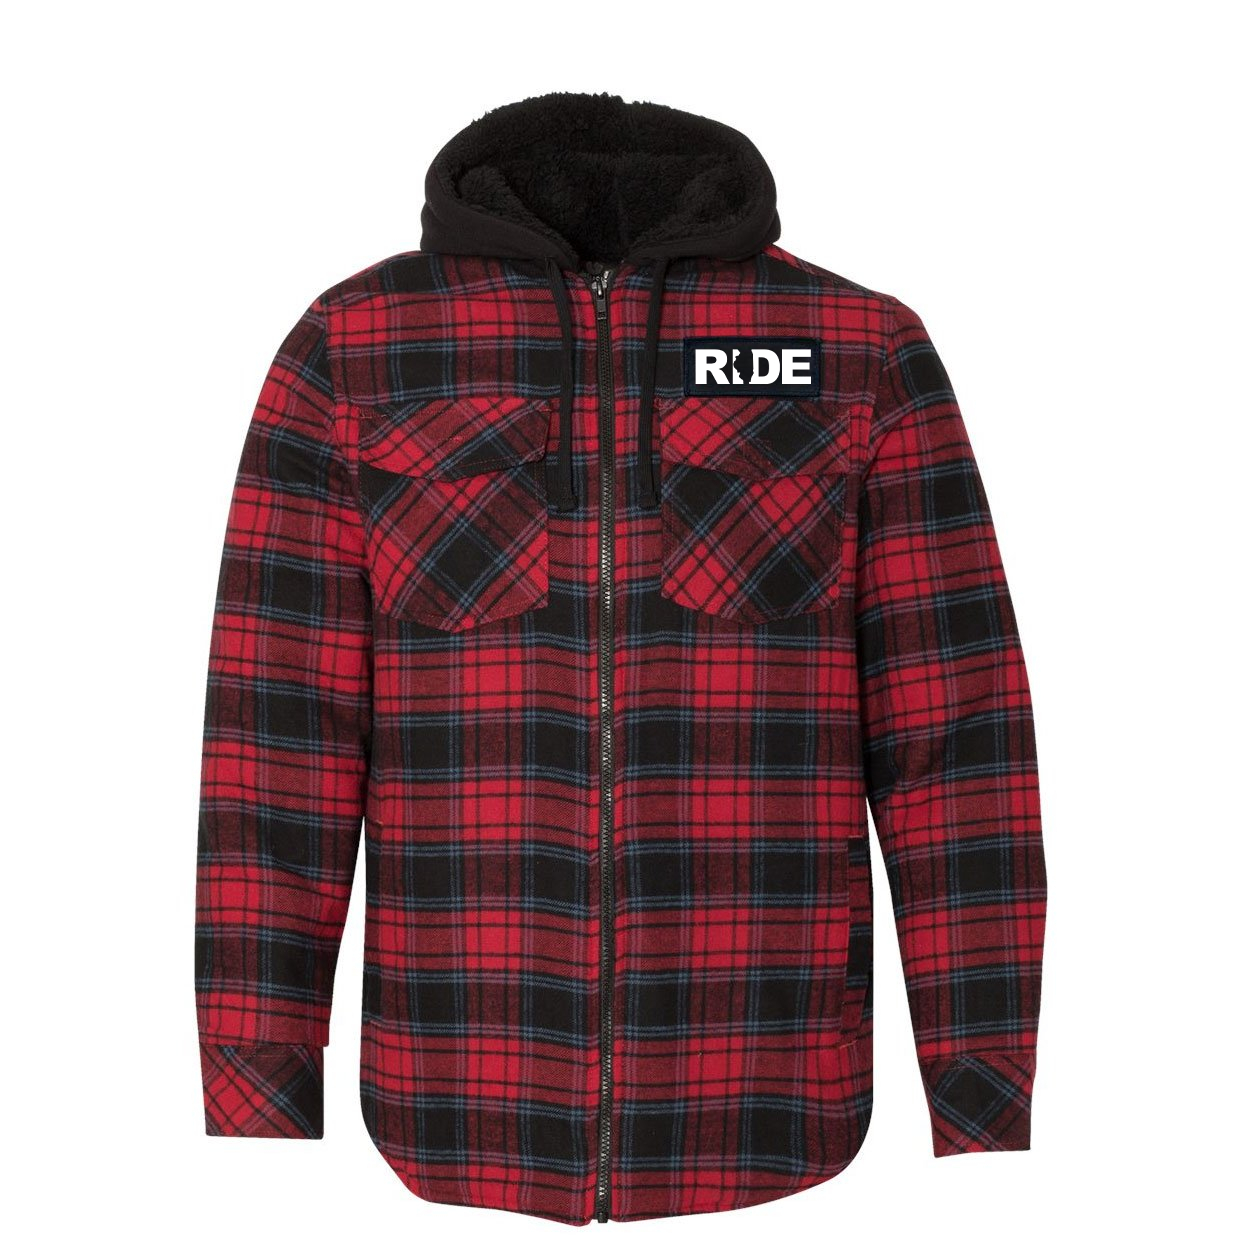 Ride Illinois Classic Unisex Full Zip Woven Patch Hooded Flannel Jacket Red/Black Buffalo (White Logo)